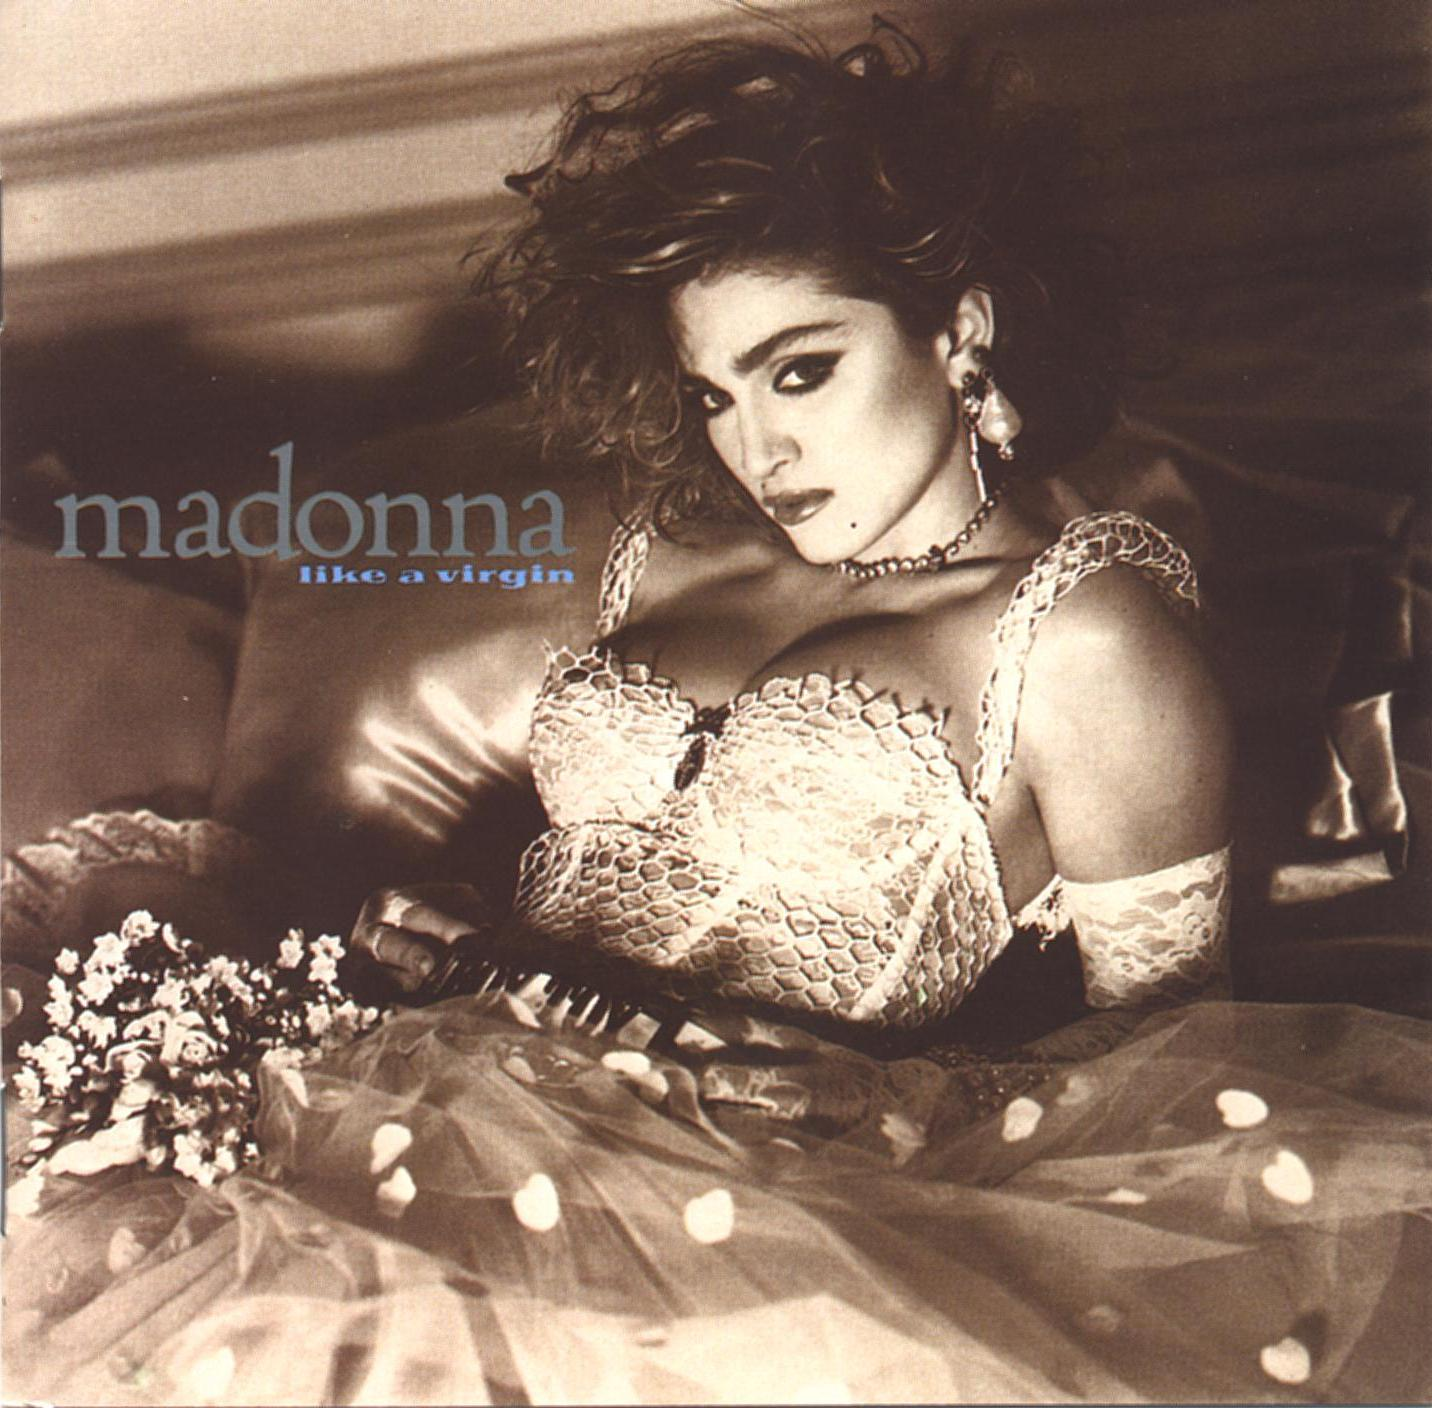 http://4.bp.blogspot.com/_Xq75fwFr6s8/TOo6A2rwx4I/AAAAAAAAAAc/peVuLsF5wIg/s1600/madonna-like-a-virgin-album-cd-cover.jpg